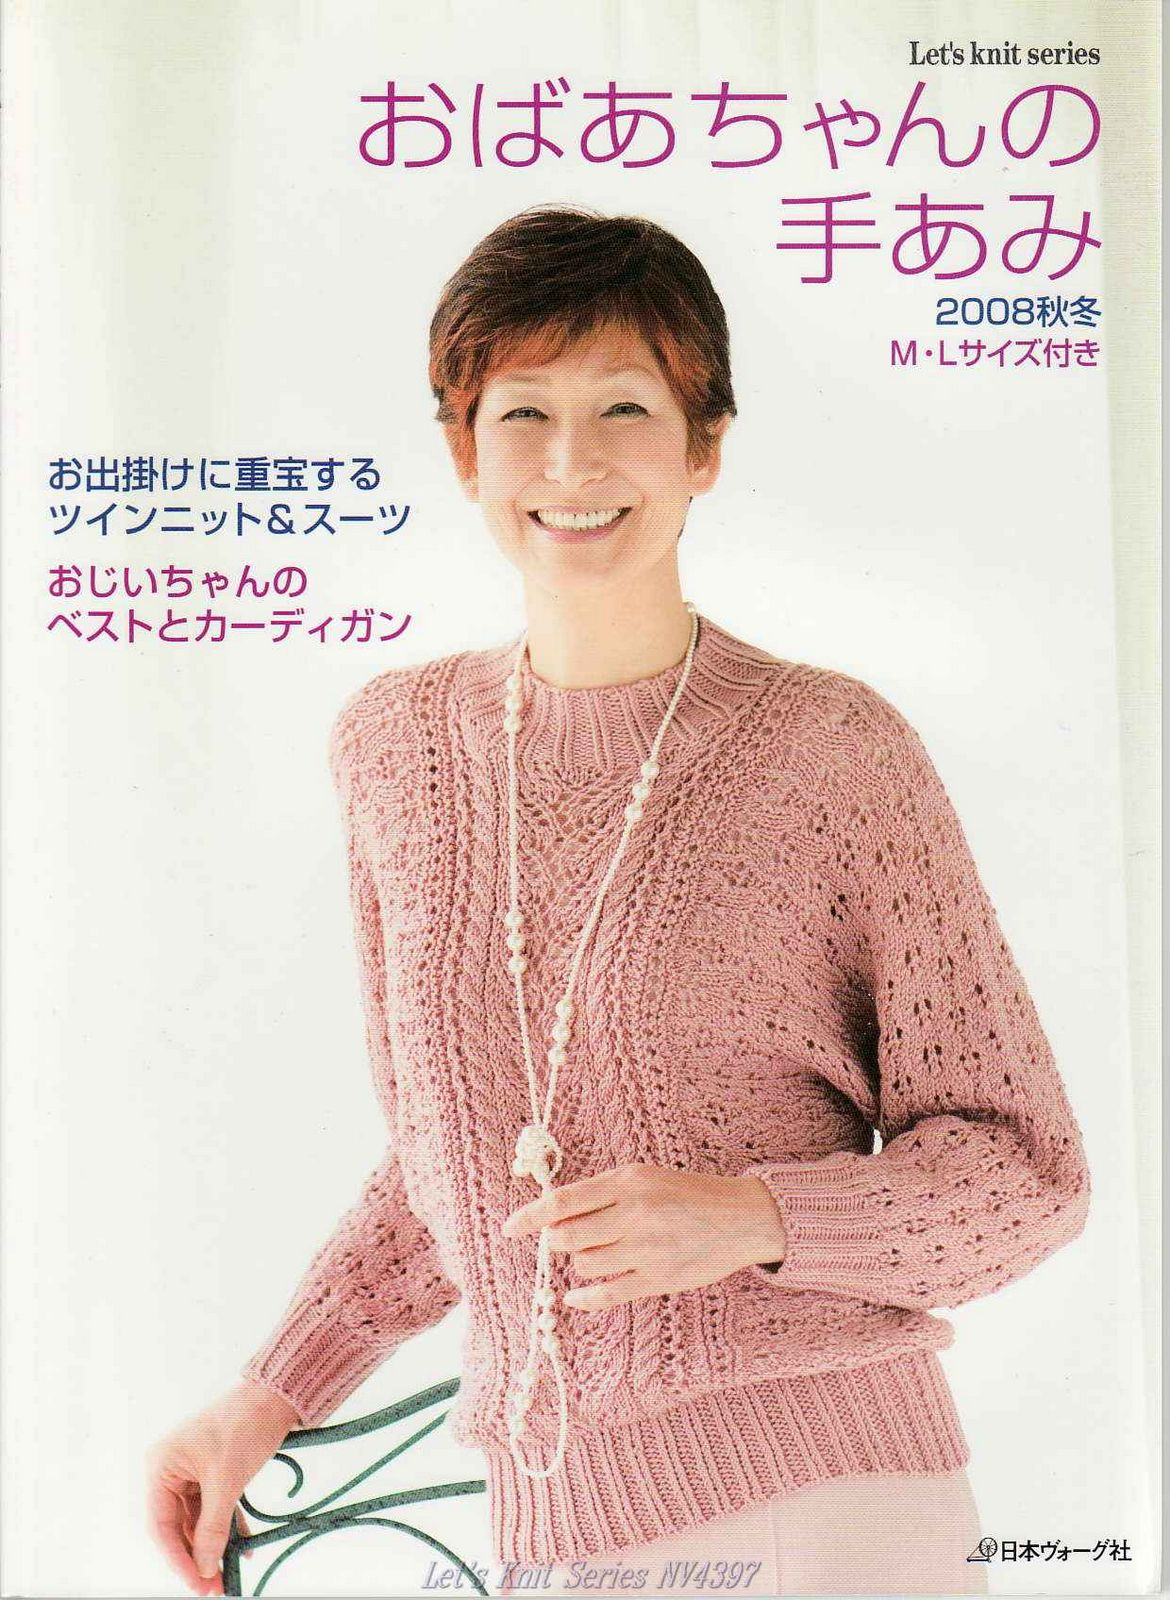 Knitting In The City Series Epub : Ebook let s knit series nv free craft ebooks